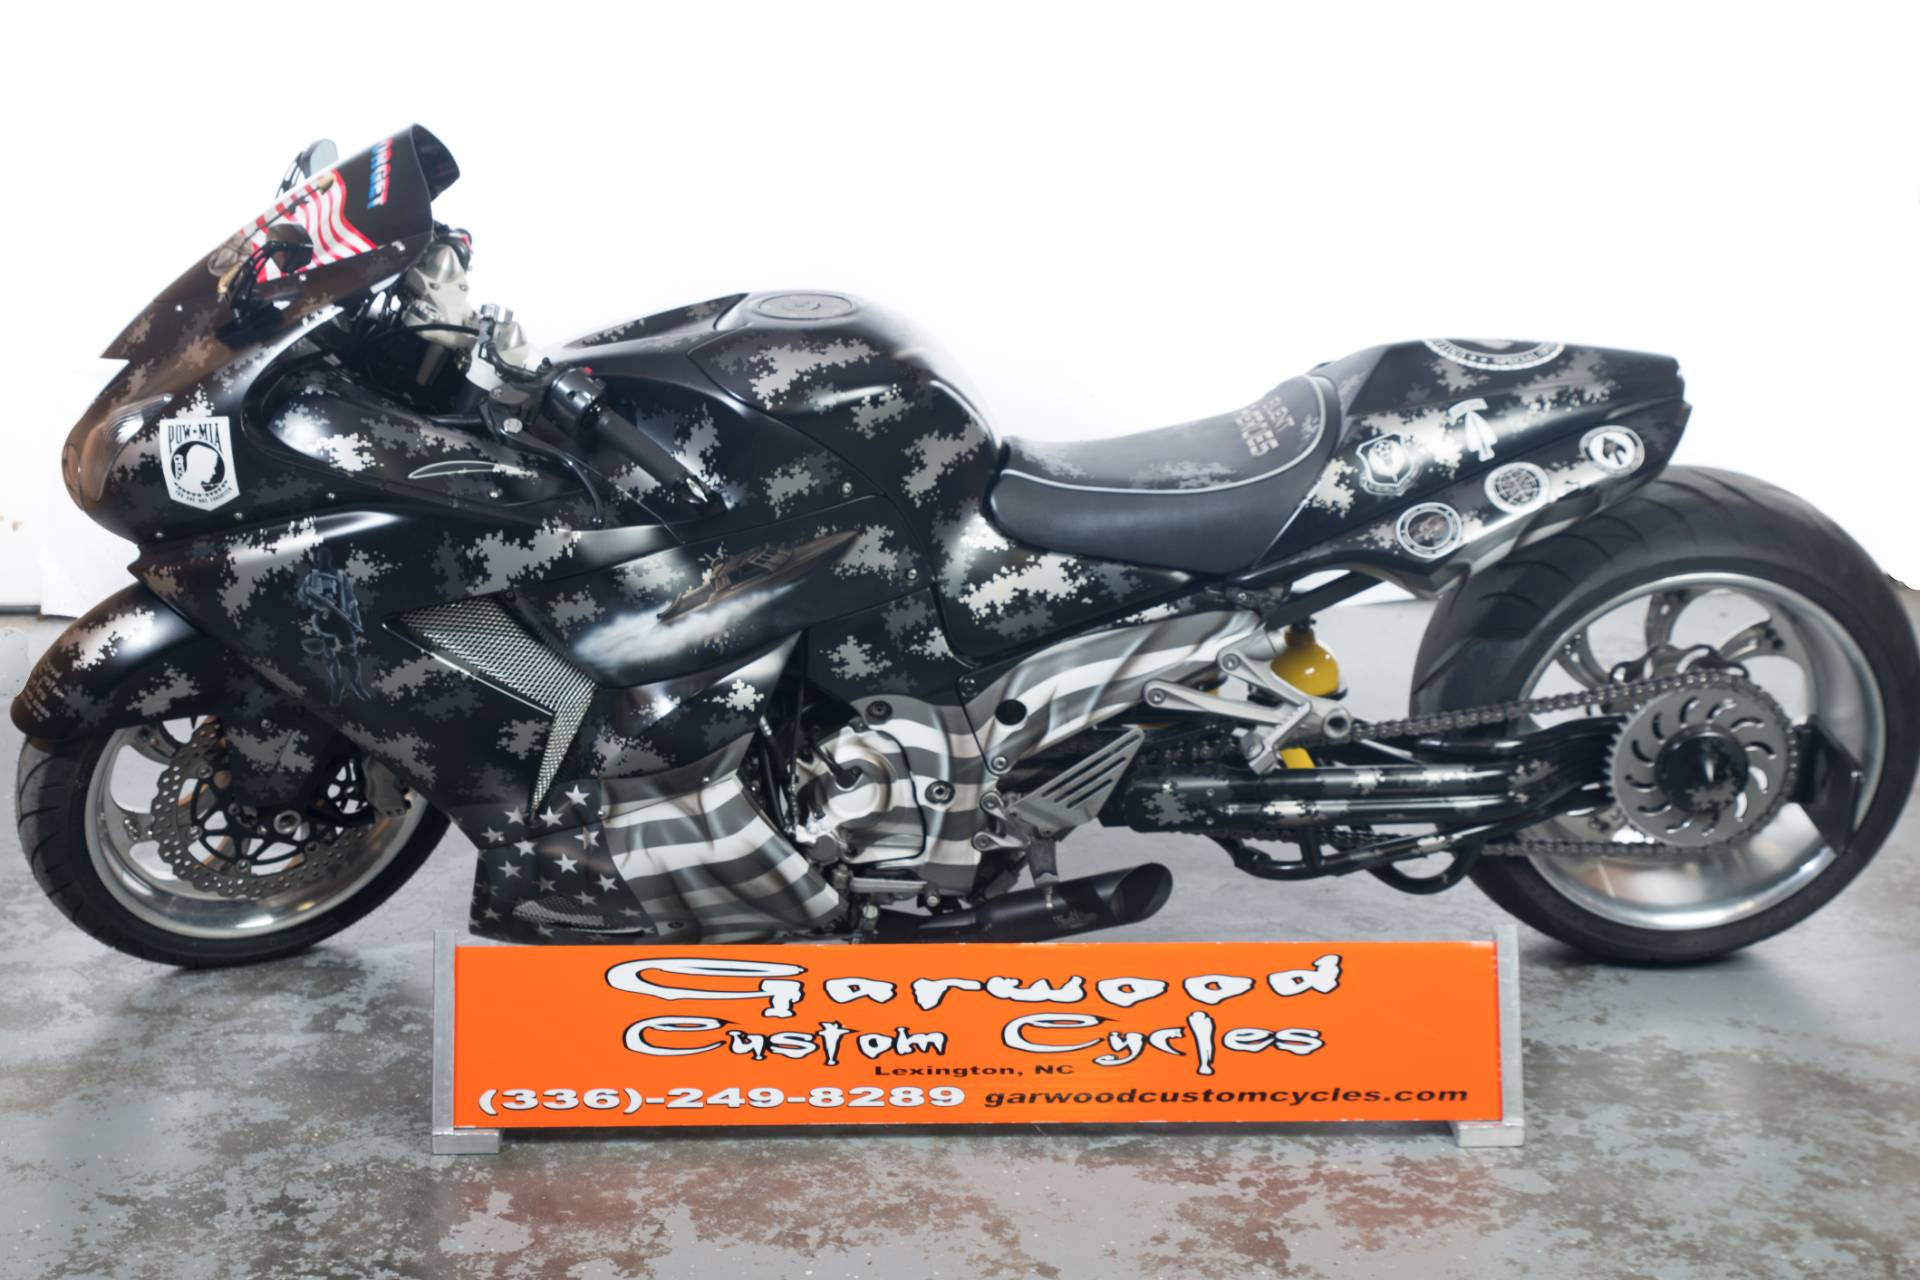 2010 Kawasaki NINJA ZX-14 in Lexington, North Carolina - Photo 5